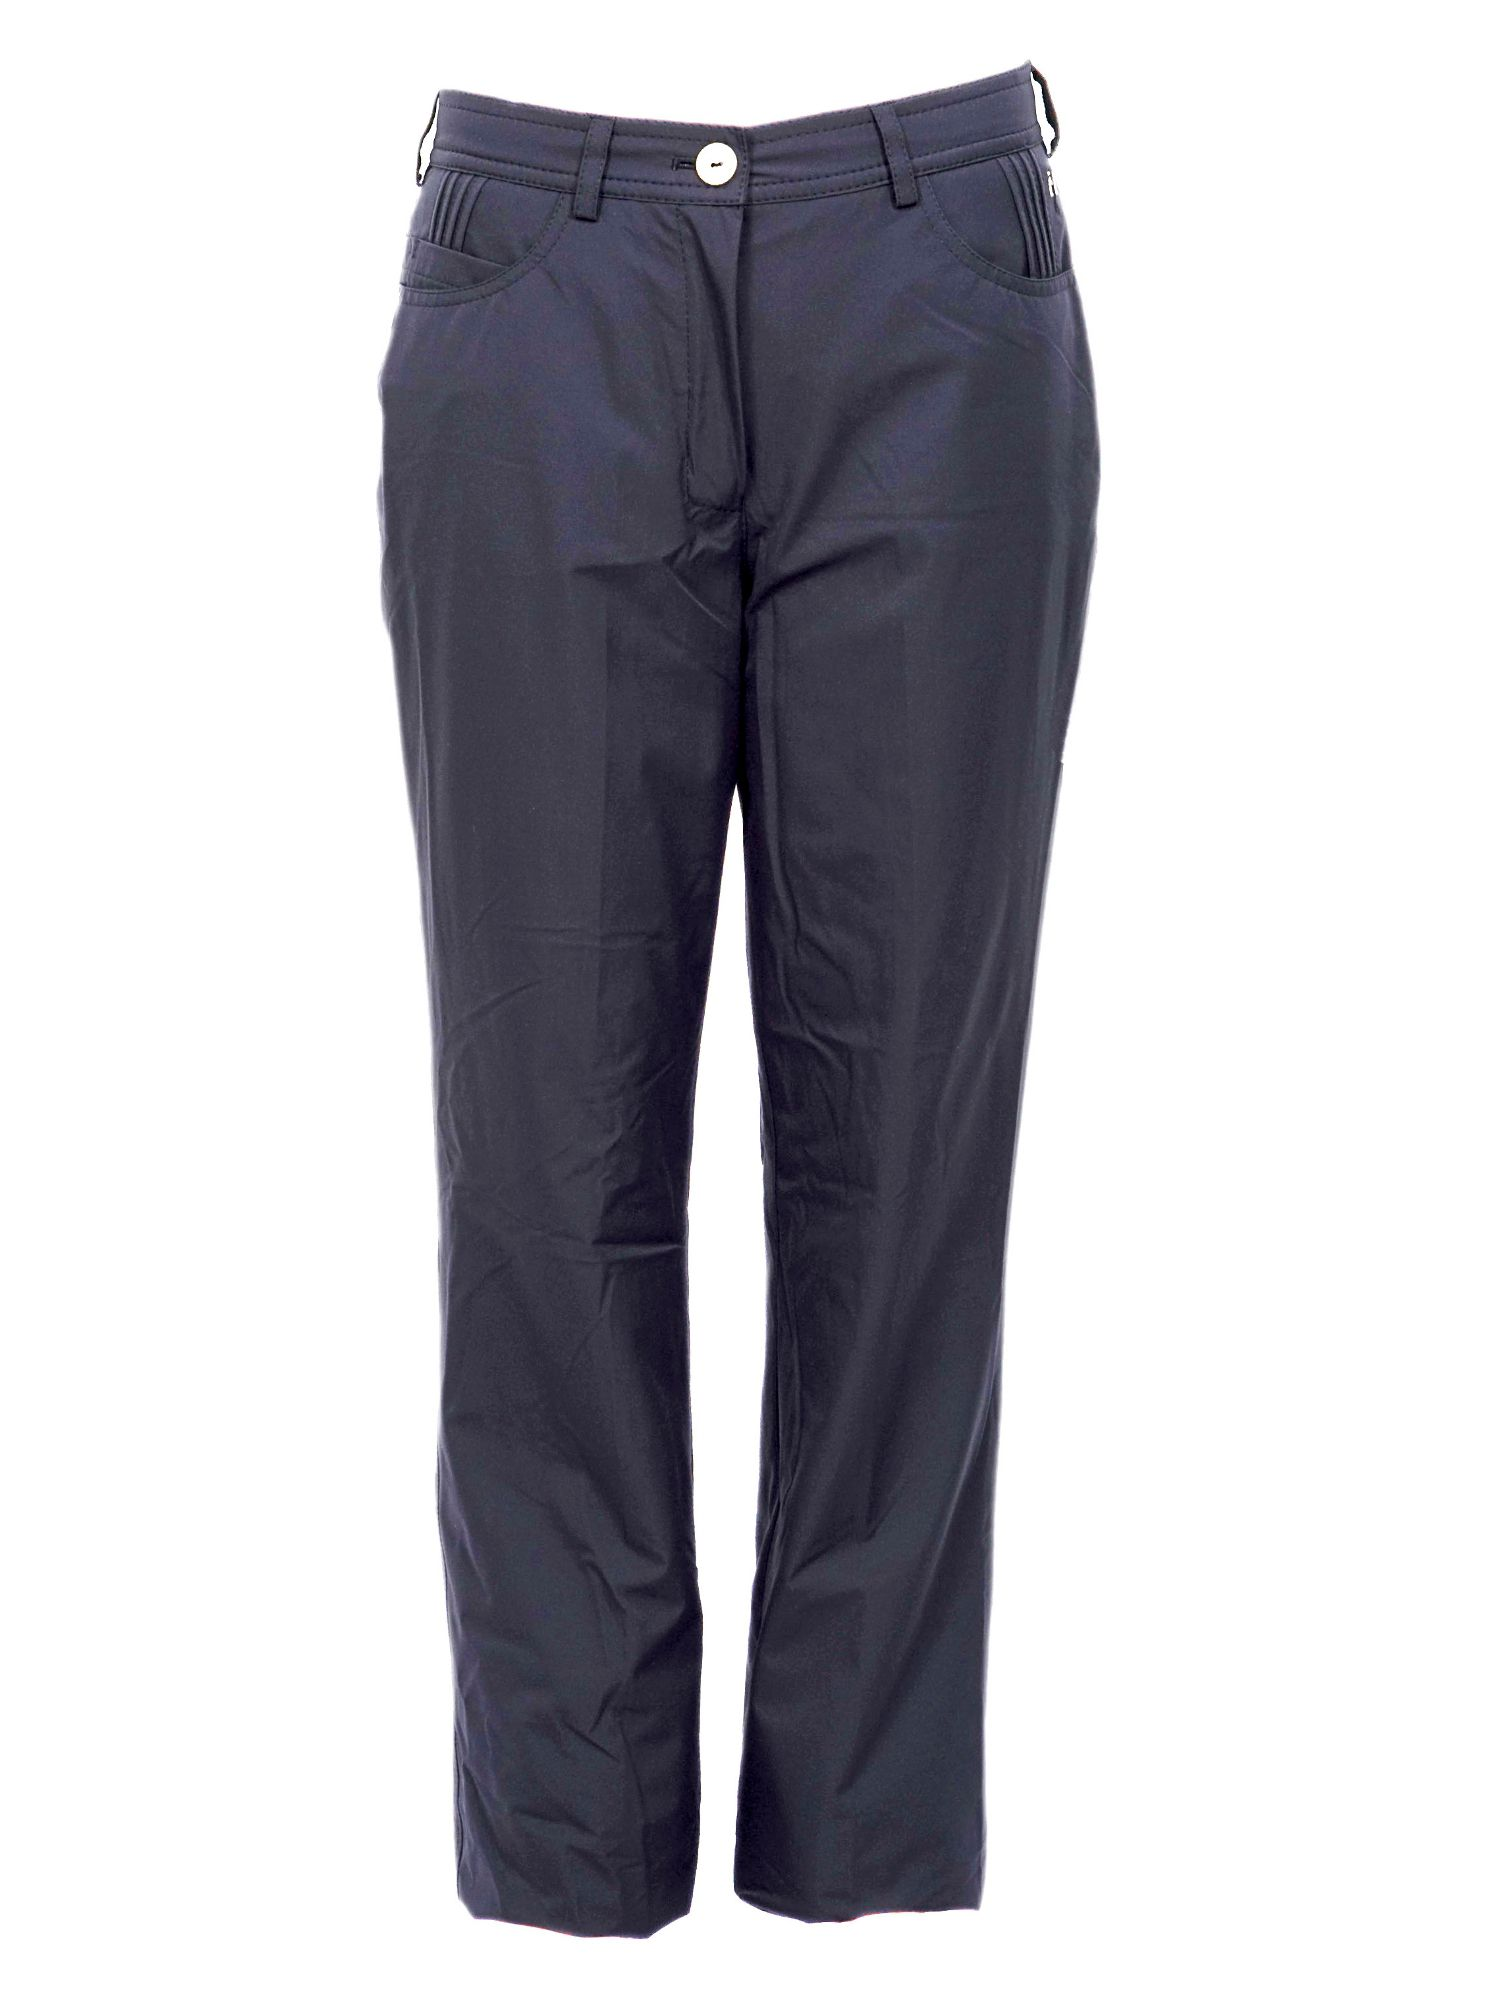 Thermo lined 5 pocket water repellent trousers